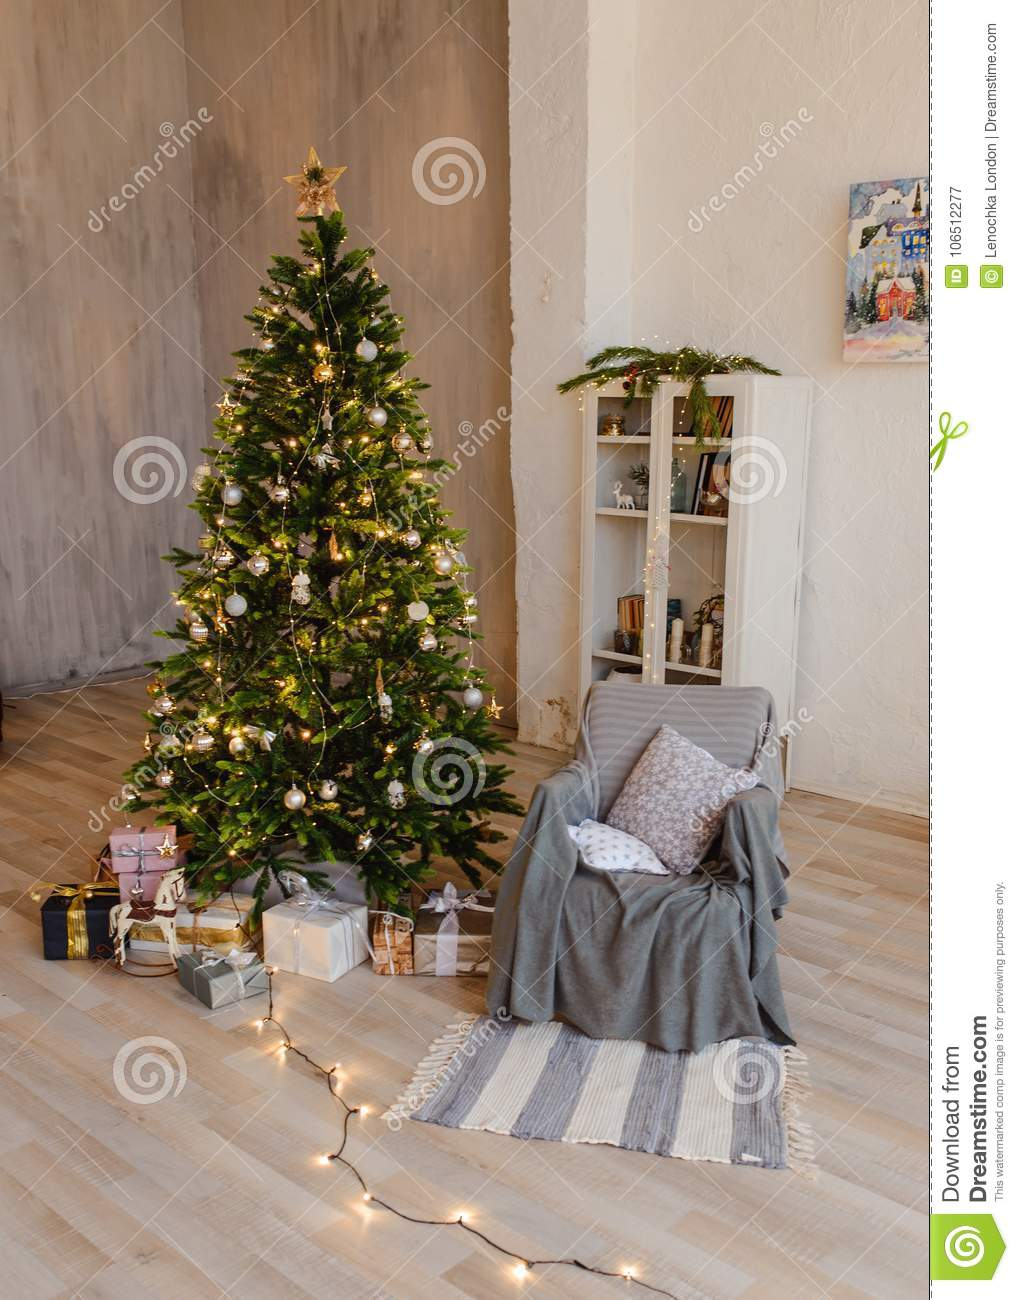 Christmas Tree With Wooden Rustic Decorations And Presents